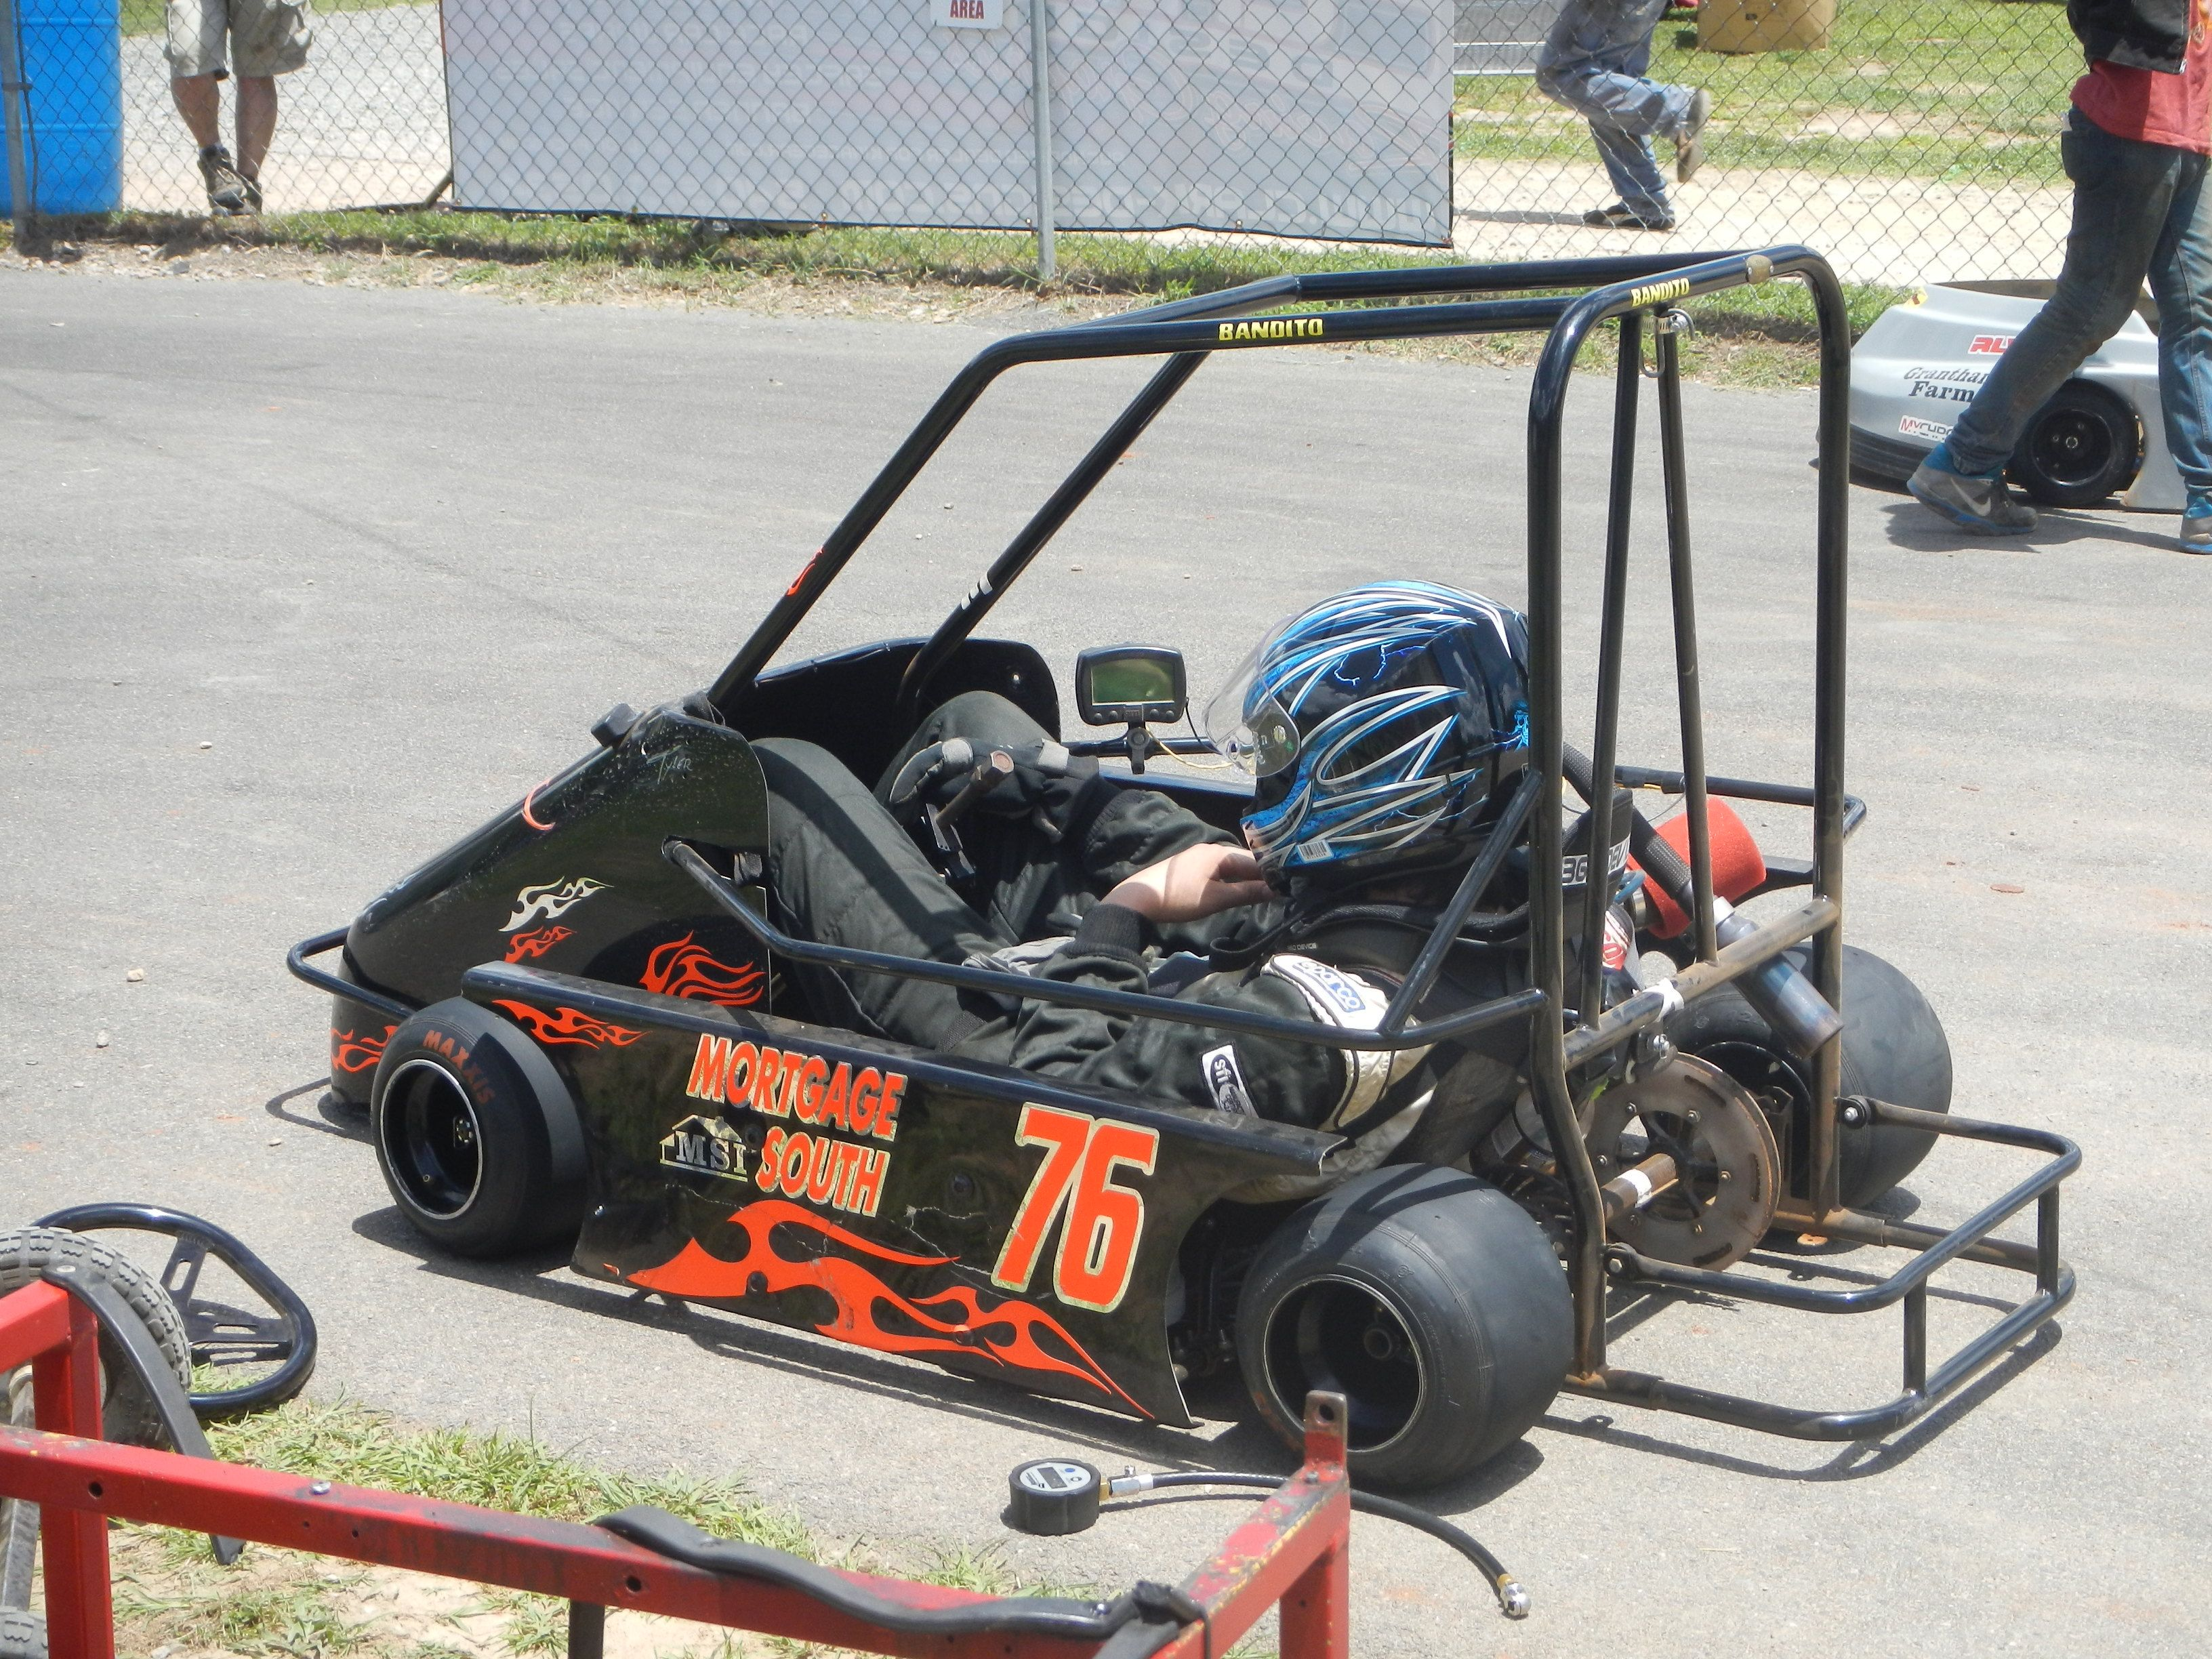 2 Dirt Track Racing Kart Oval Racers Pinterest And Karting